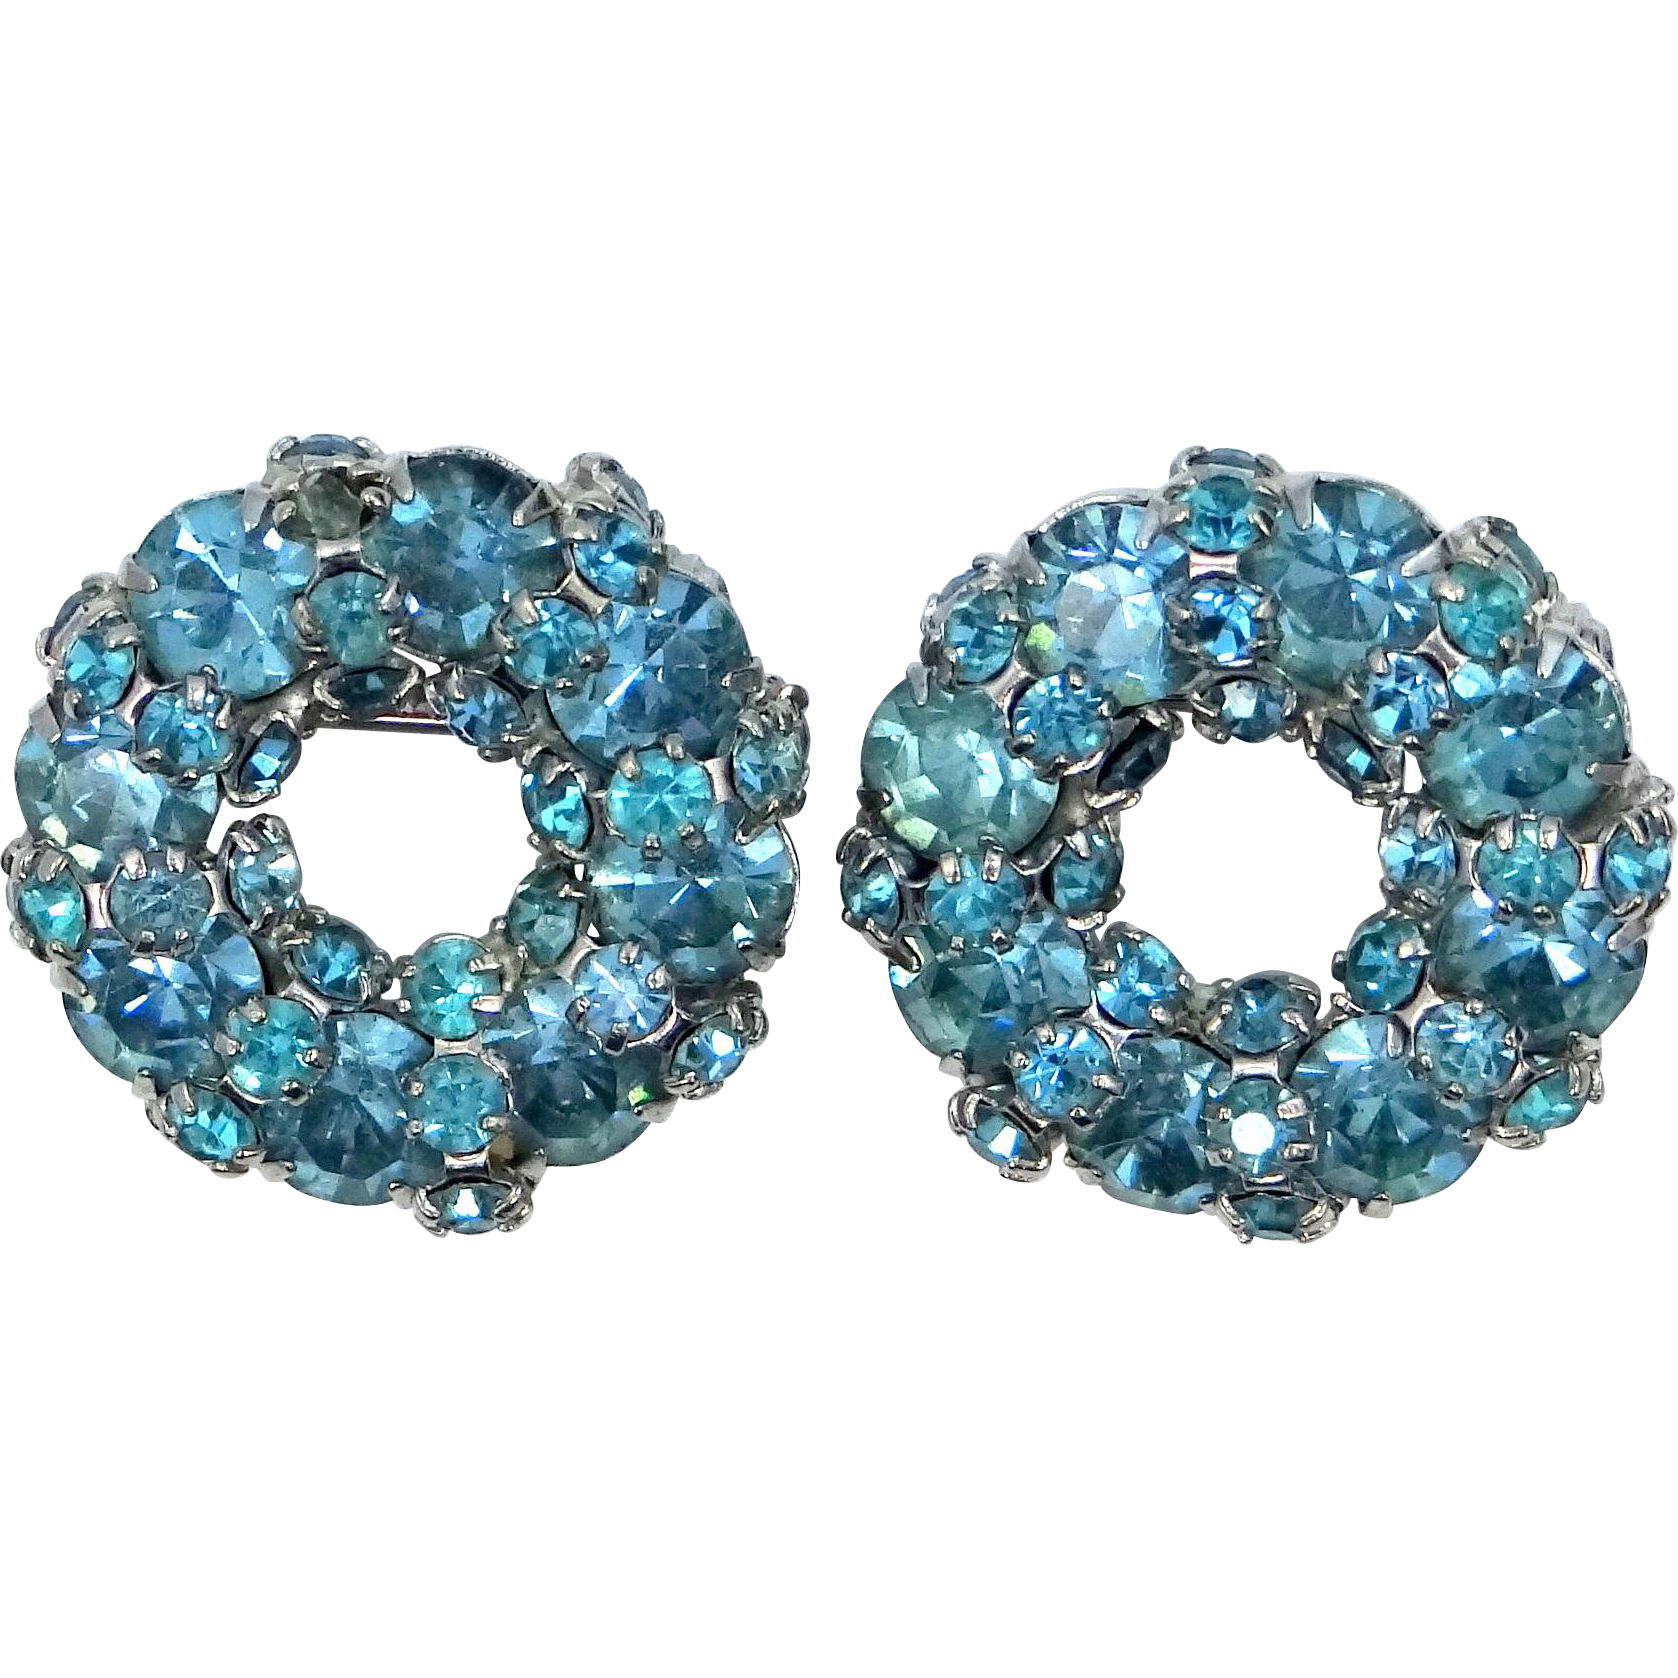 Joseph Warner Small Circle Scatter Pins Blue Rhinestones